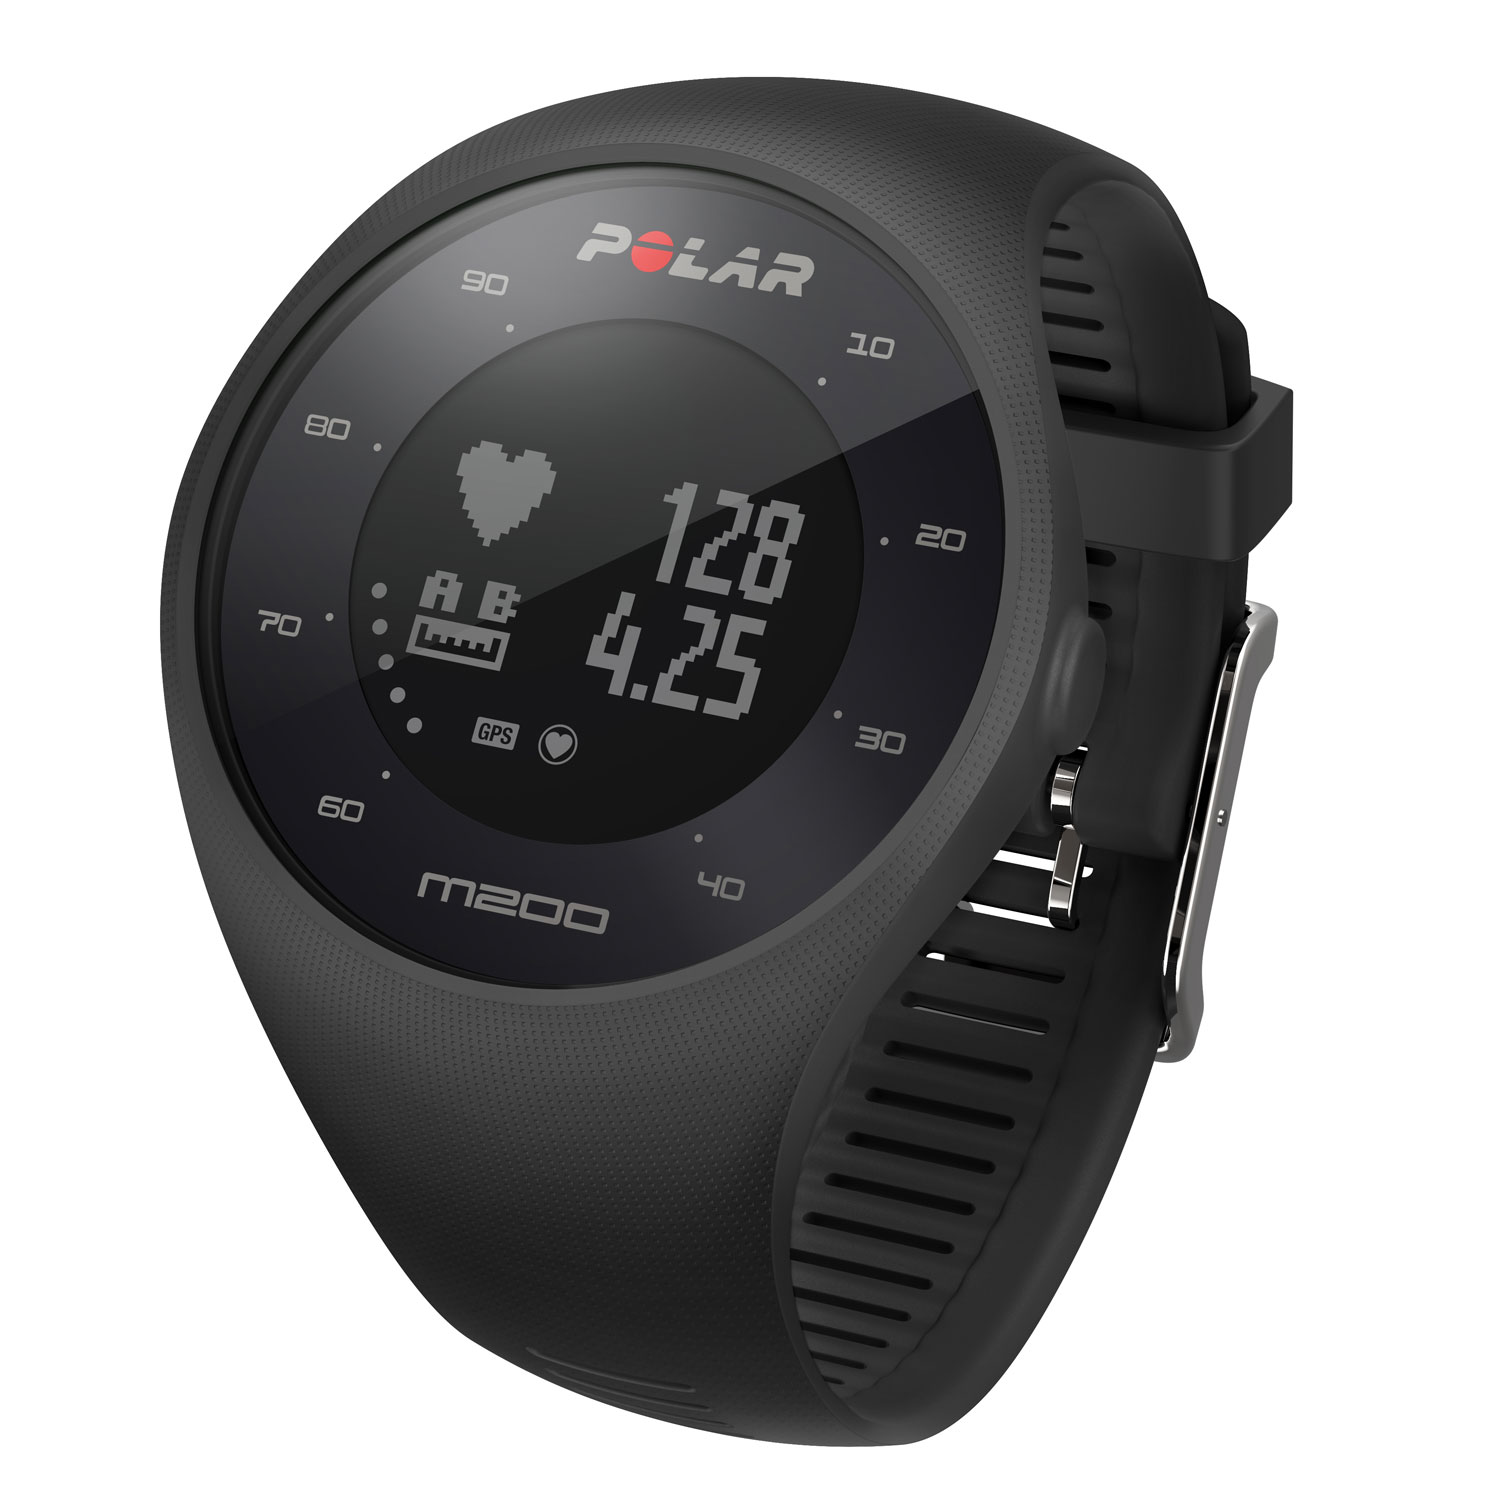 new concept 50b1f 3f3f1 Polar M200 sports watch for running with 24 7 activity tracker